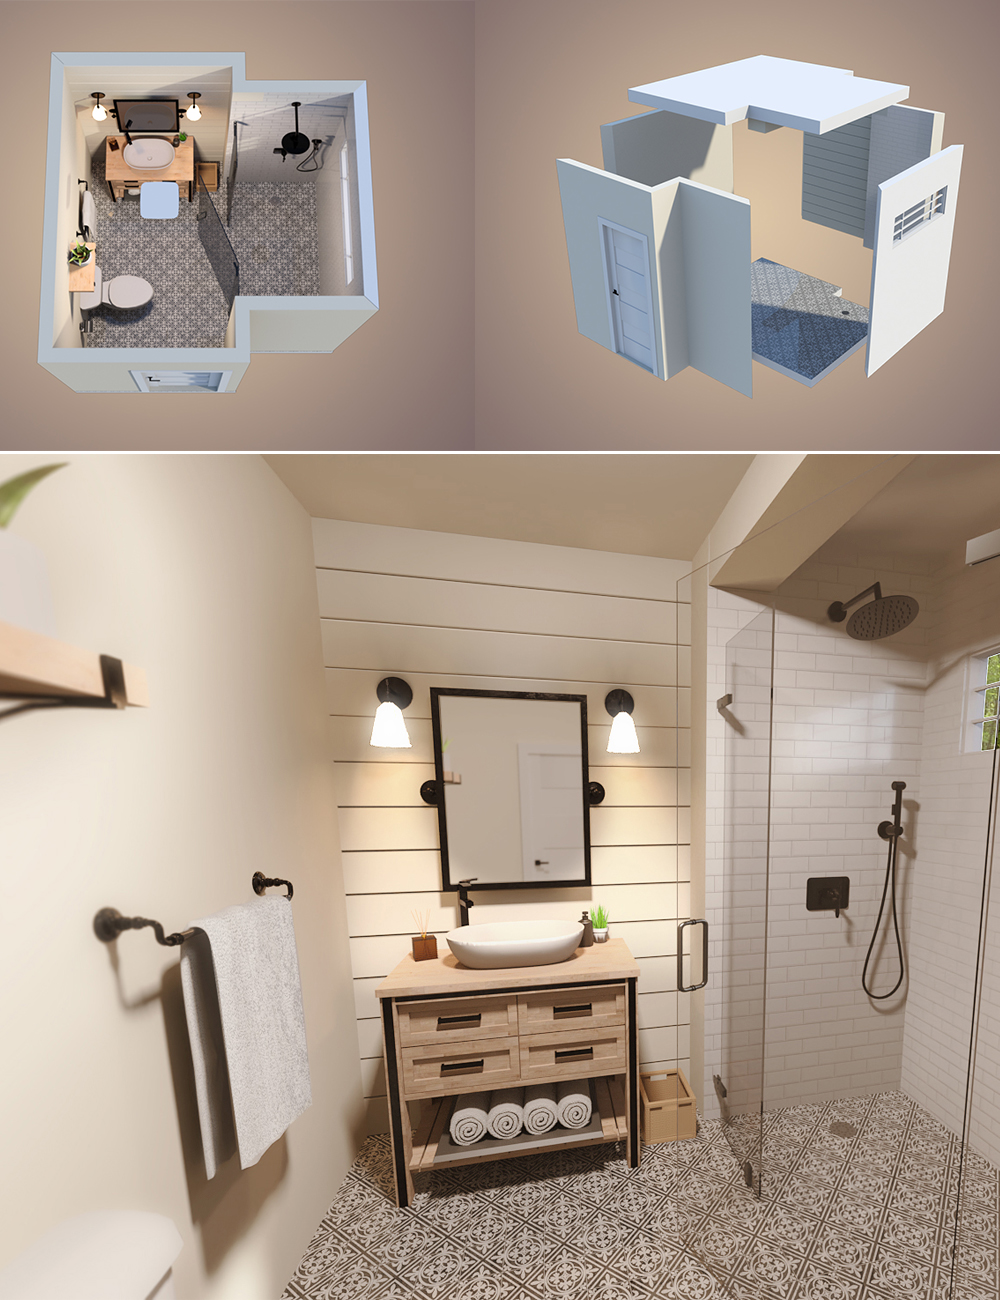 Transitional Bathroom by: PerspectX, 3D Models by Daz 3D